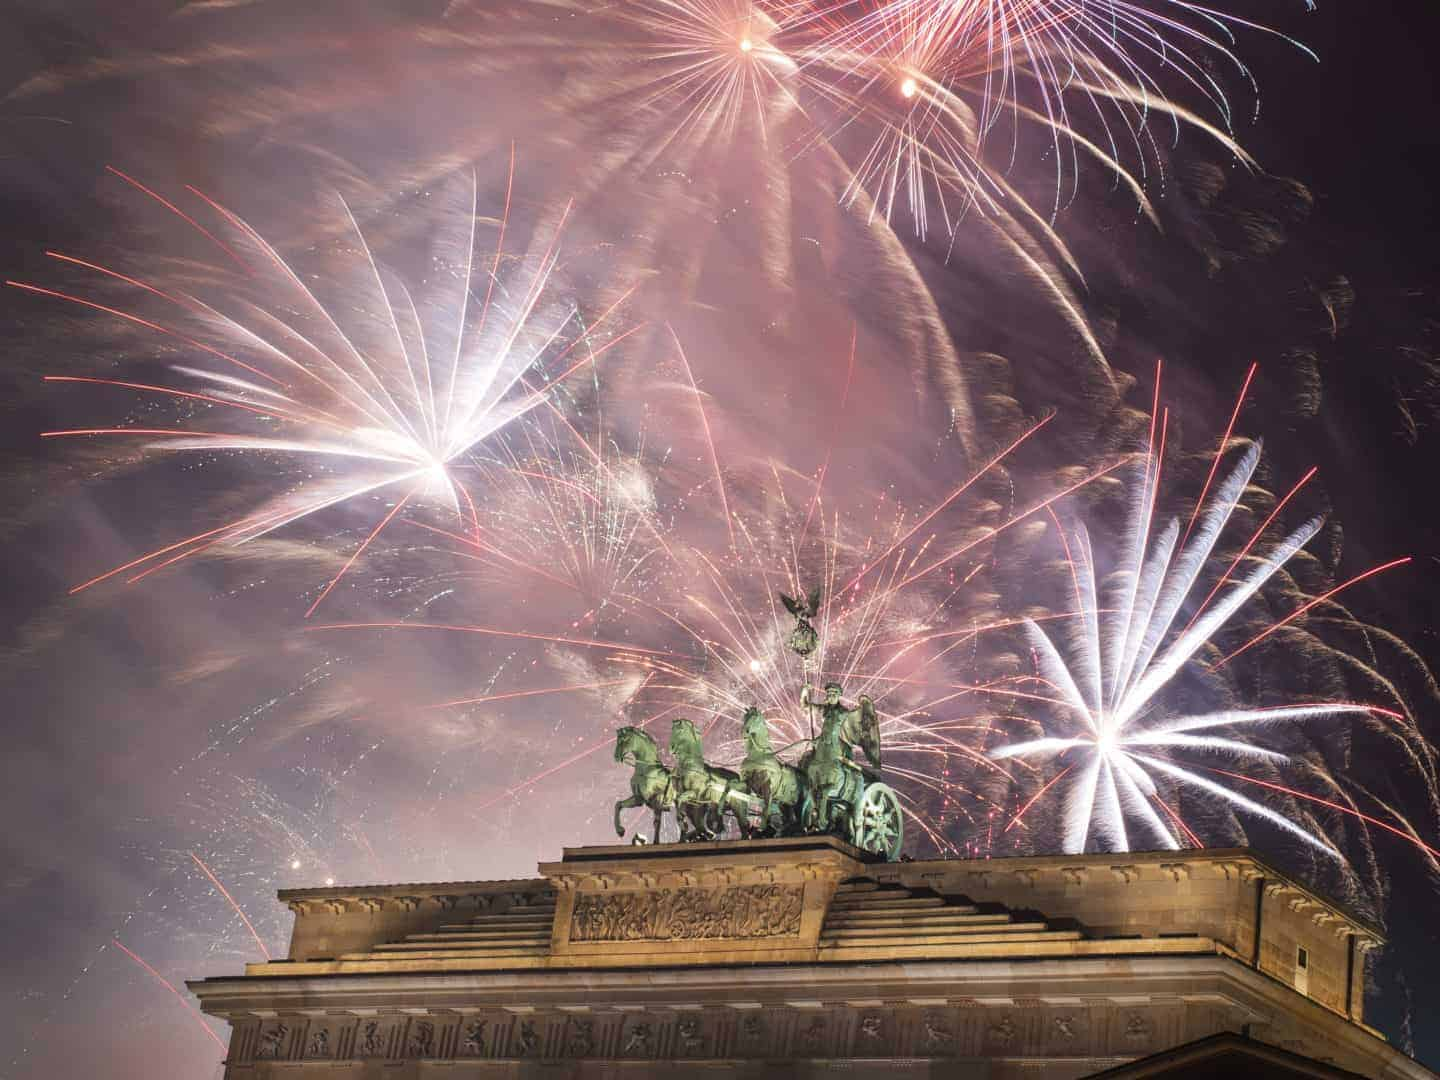 Fireworks over the Brandenburg Gate in Berlin, Germany, during New Year concert and celebrations.